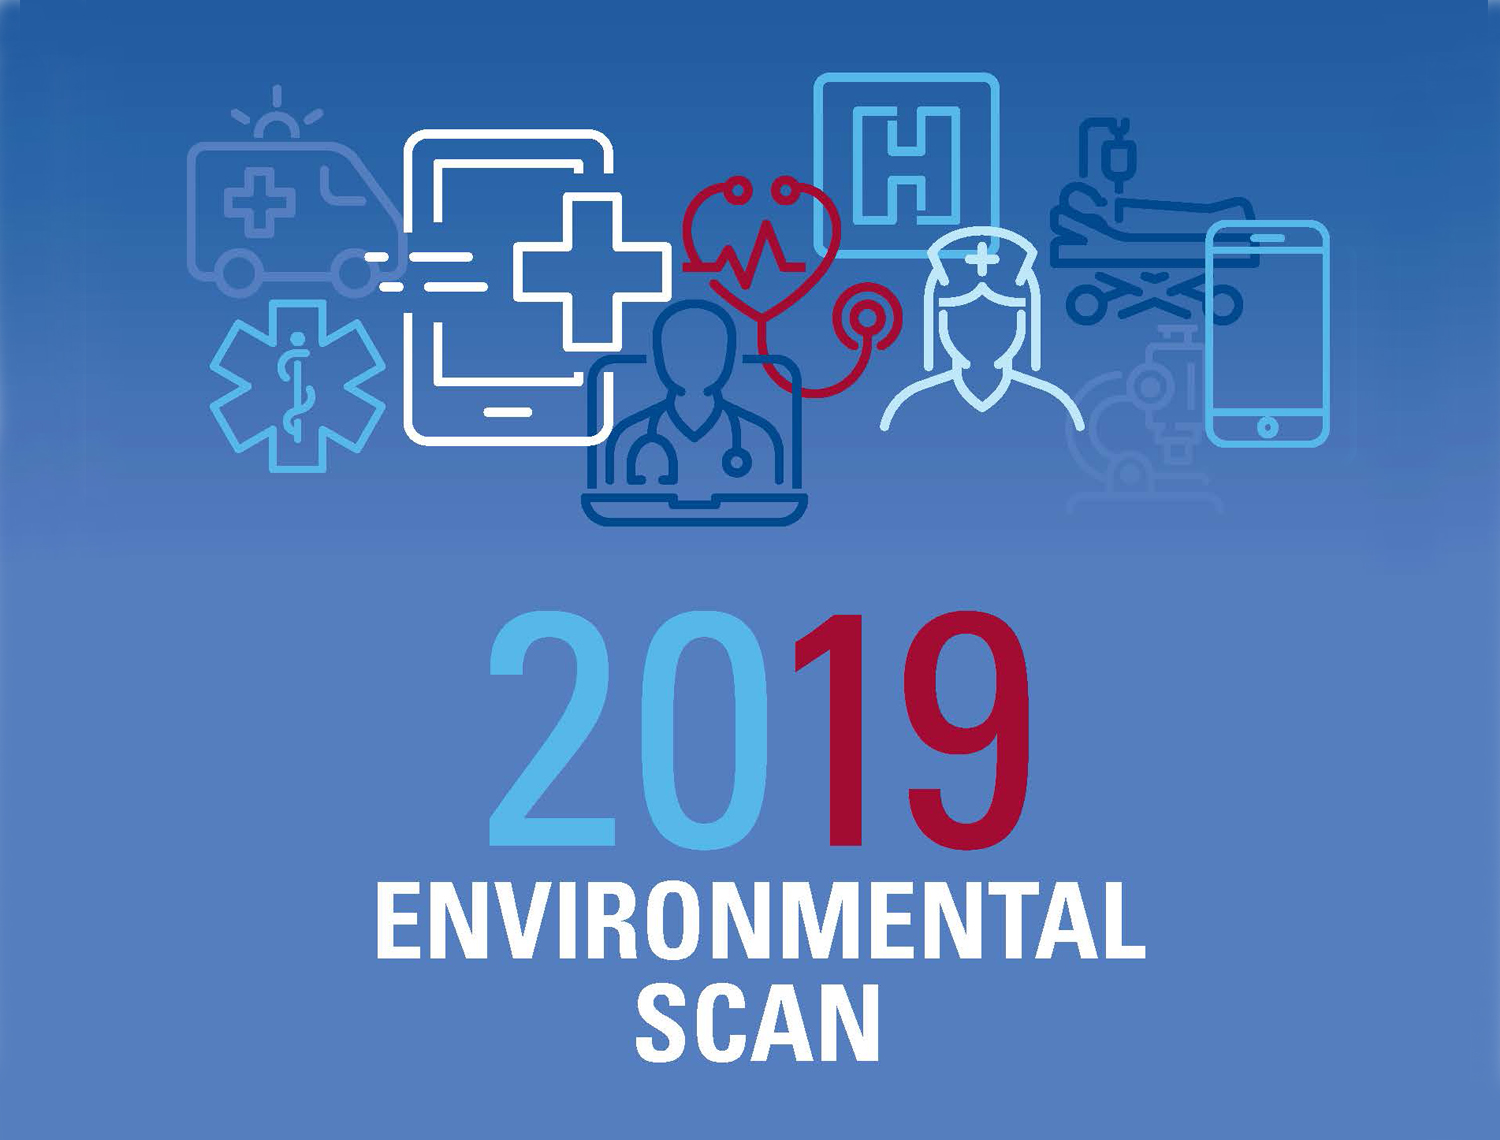 2019 environmental scan graphic